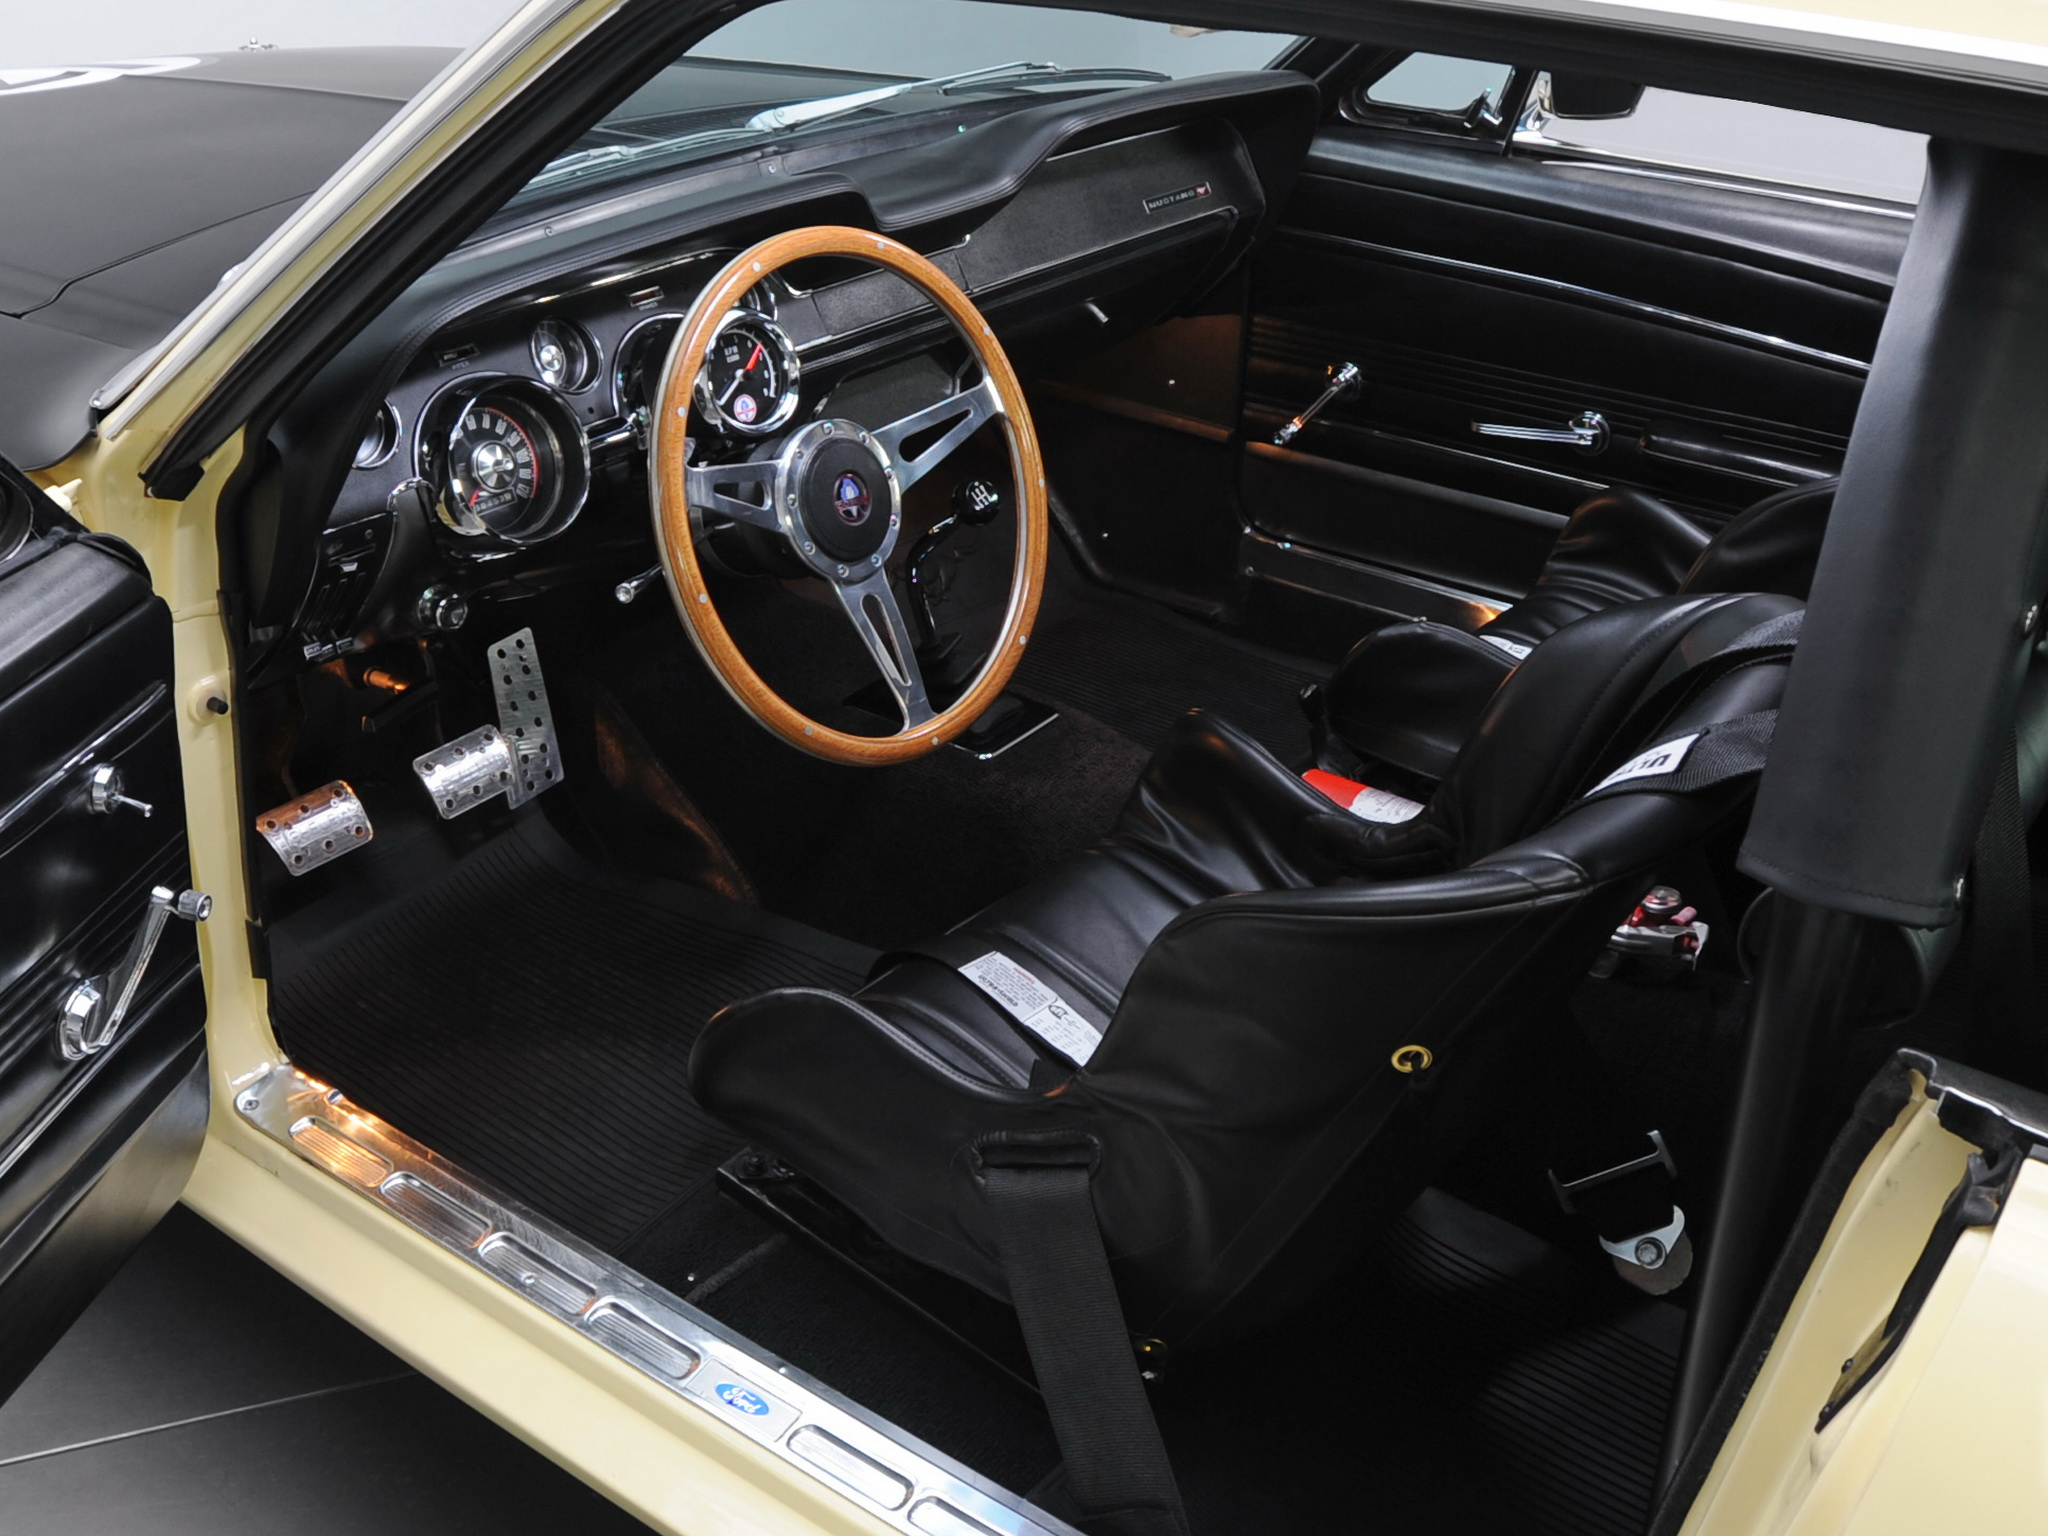 1967 ford mustang coupe race car 65b racing muscle classic interior h wallpaper 2048x1536. Black Bedroom Furniture Sets. Home Design Ideas